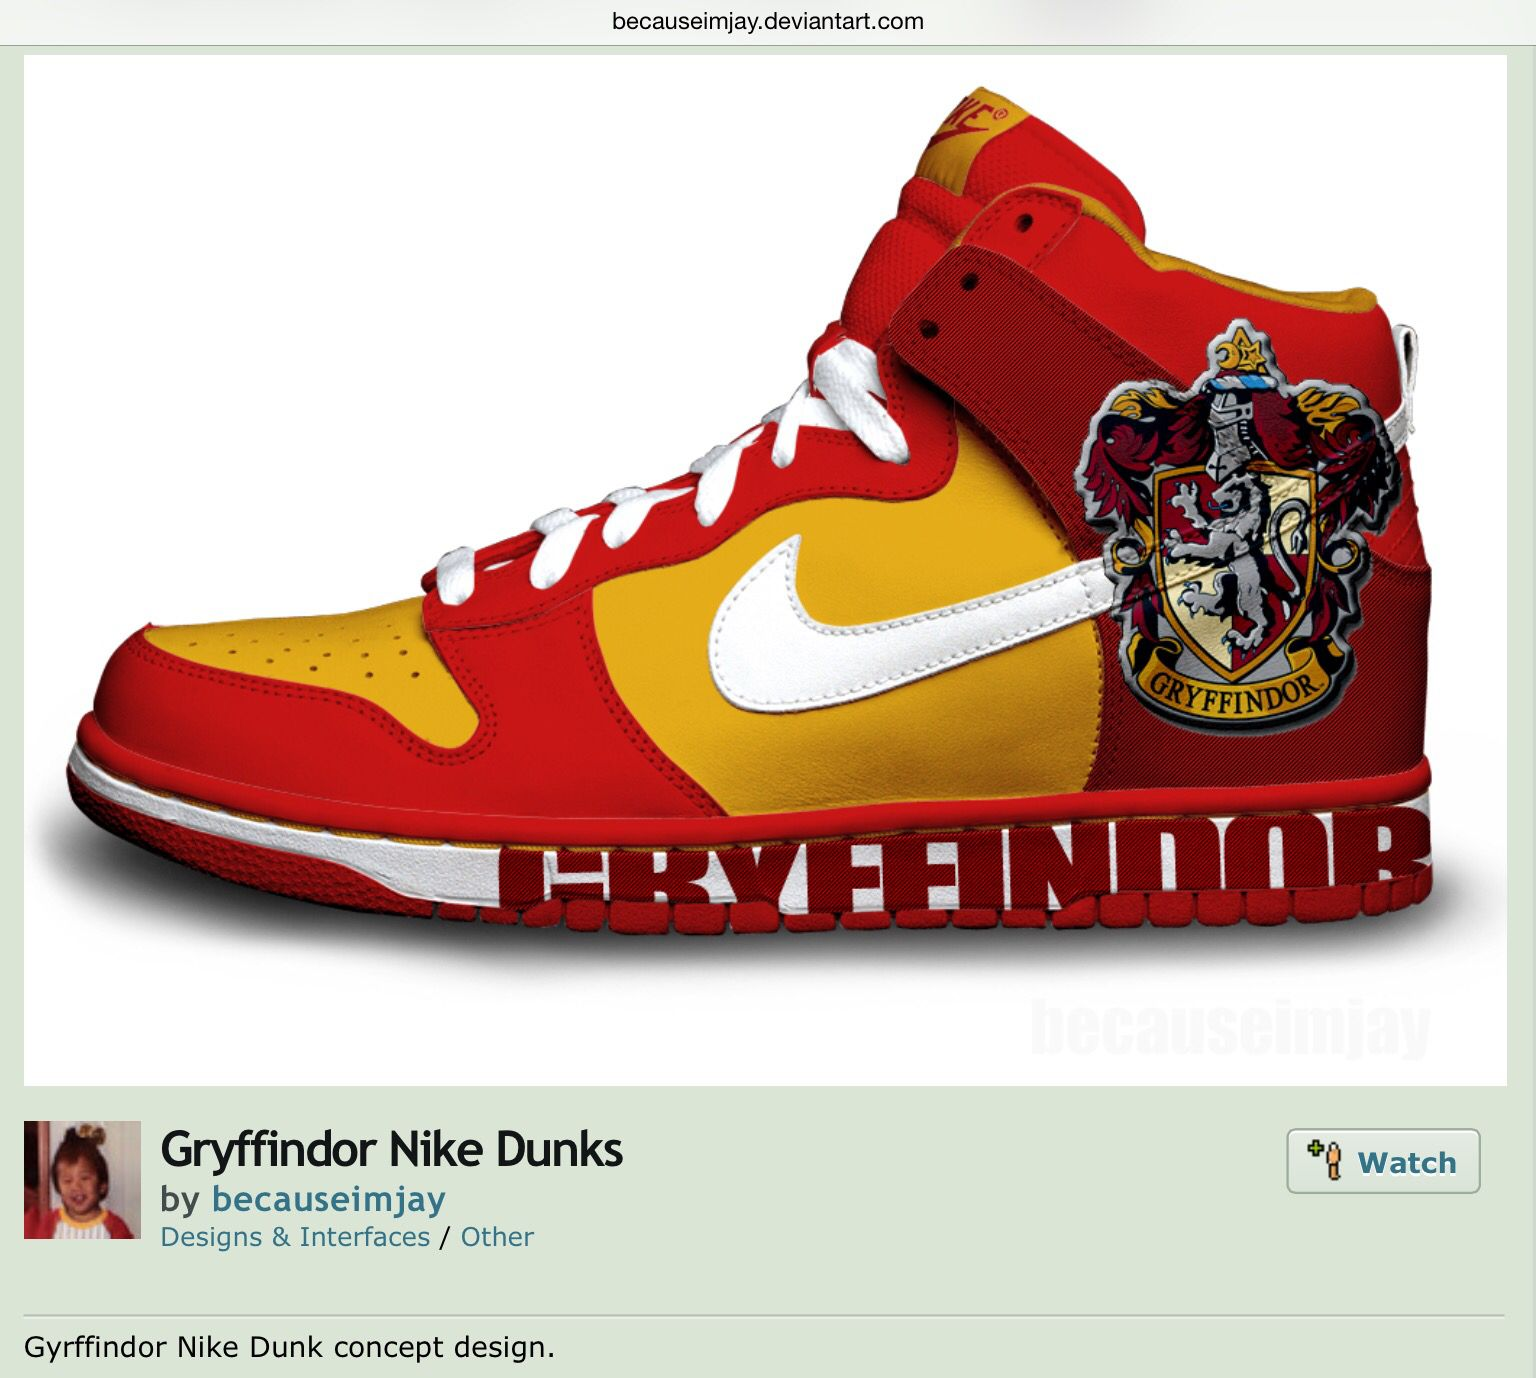 Gryffindor Nike Dunks - Shoes - concept design - Harry Potter ... 583d0f93d